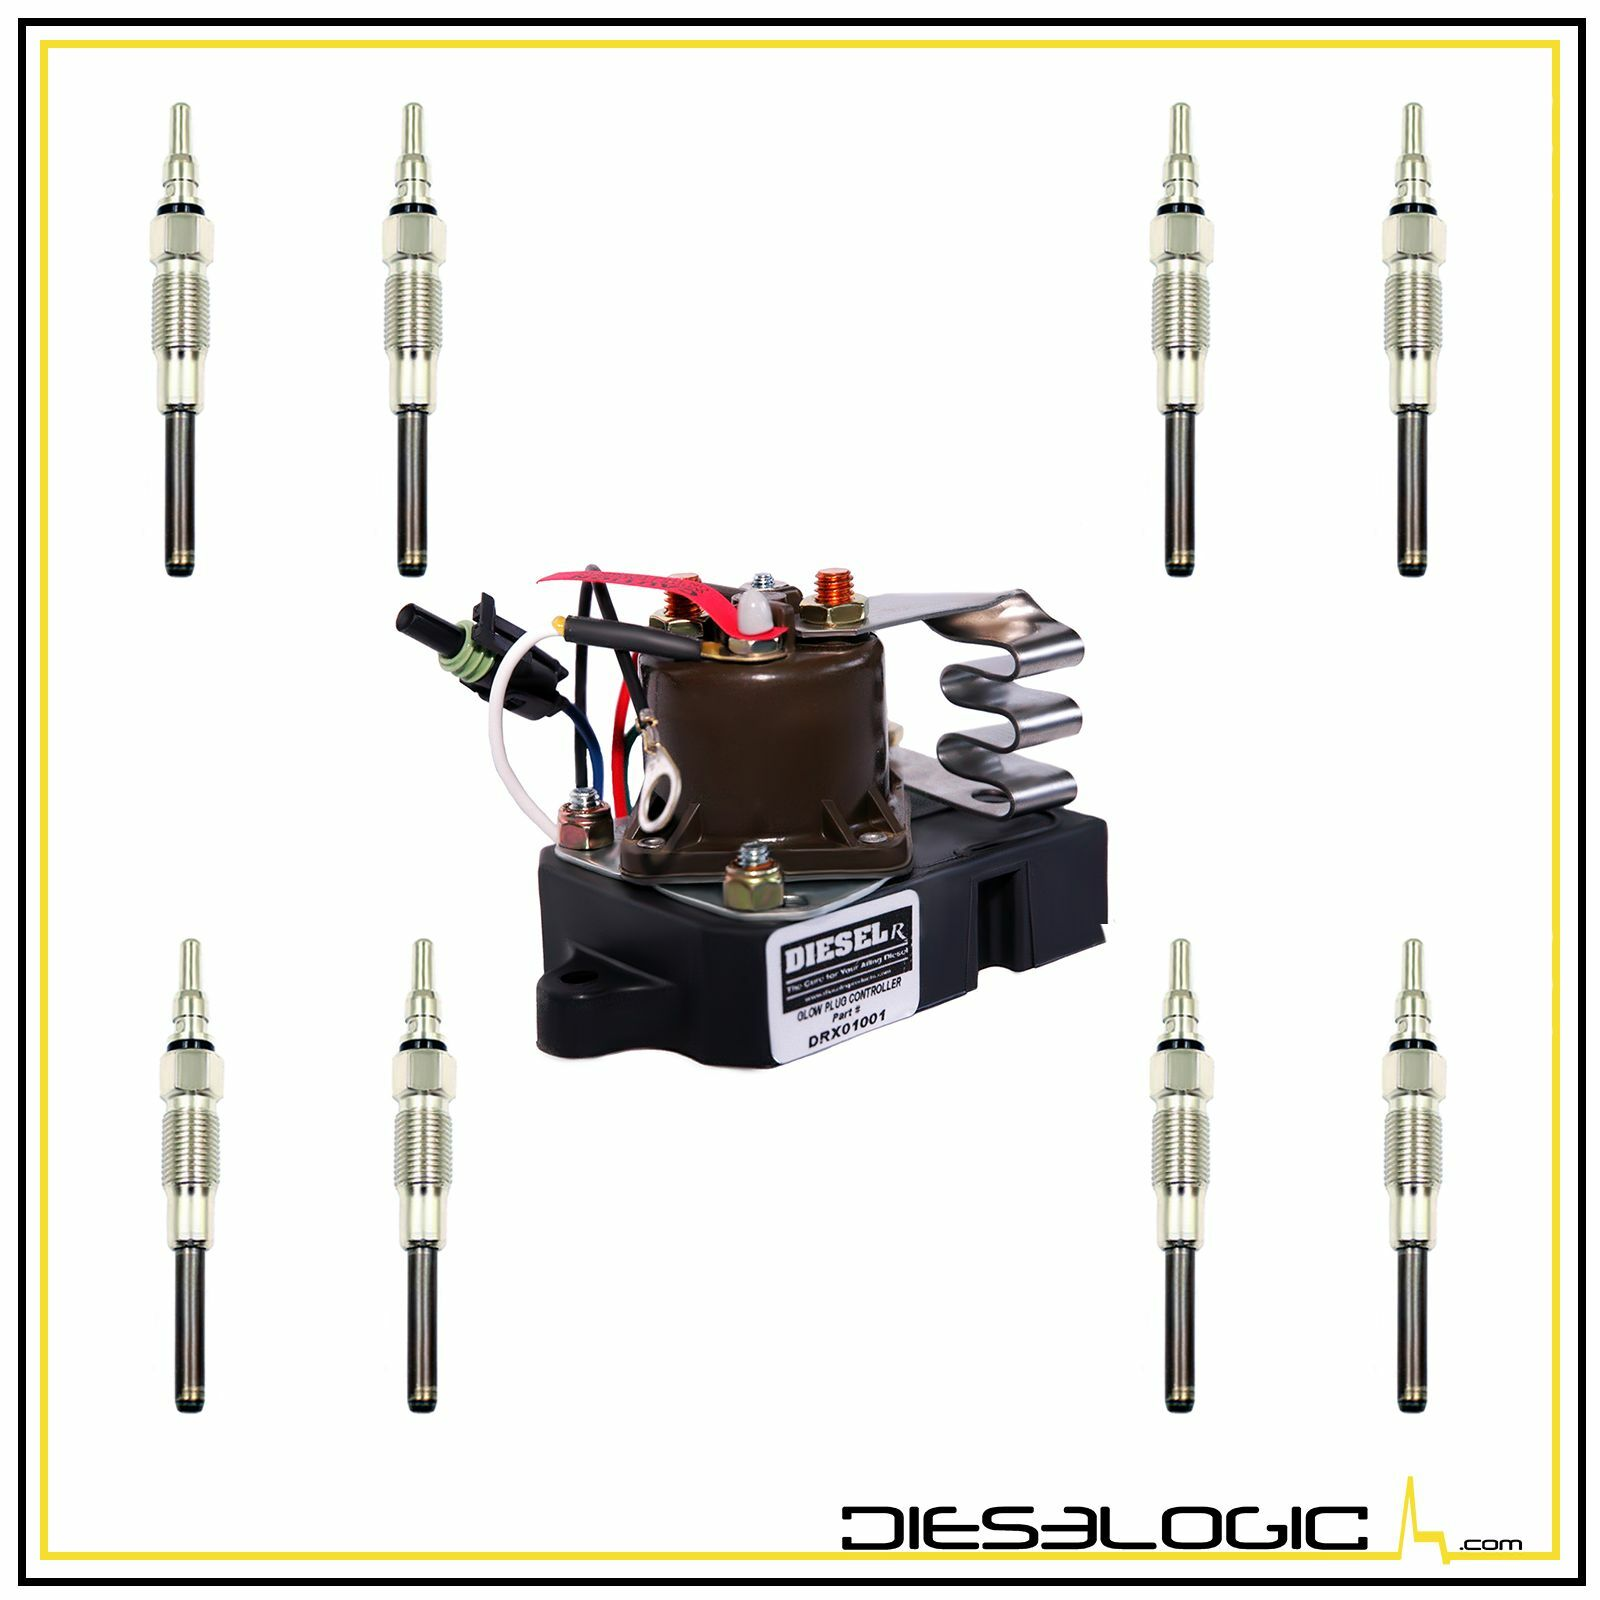 1987-1994 NEW 7.3L,6.9L INJECTOR RETURN LINE KIT FOR FORD E SERIES AND F SERIES